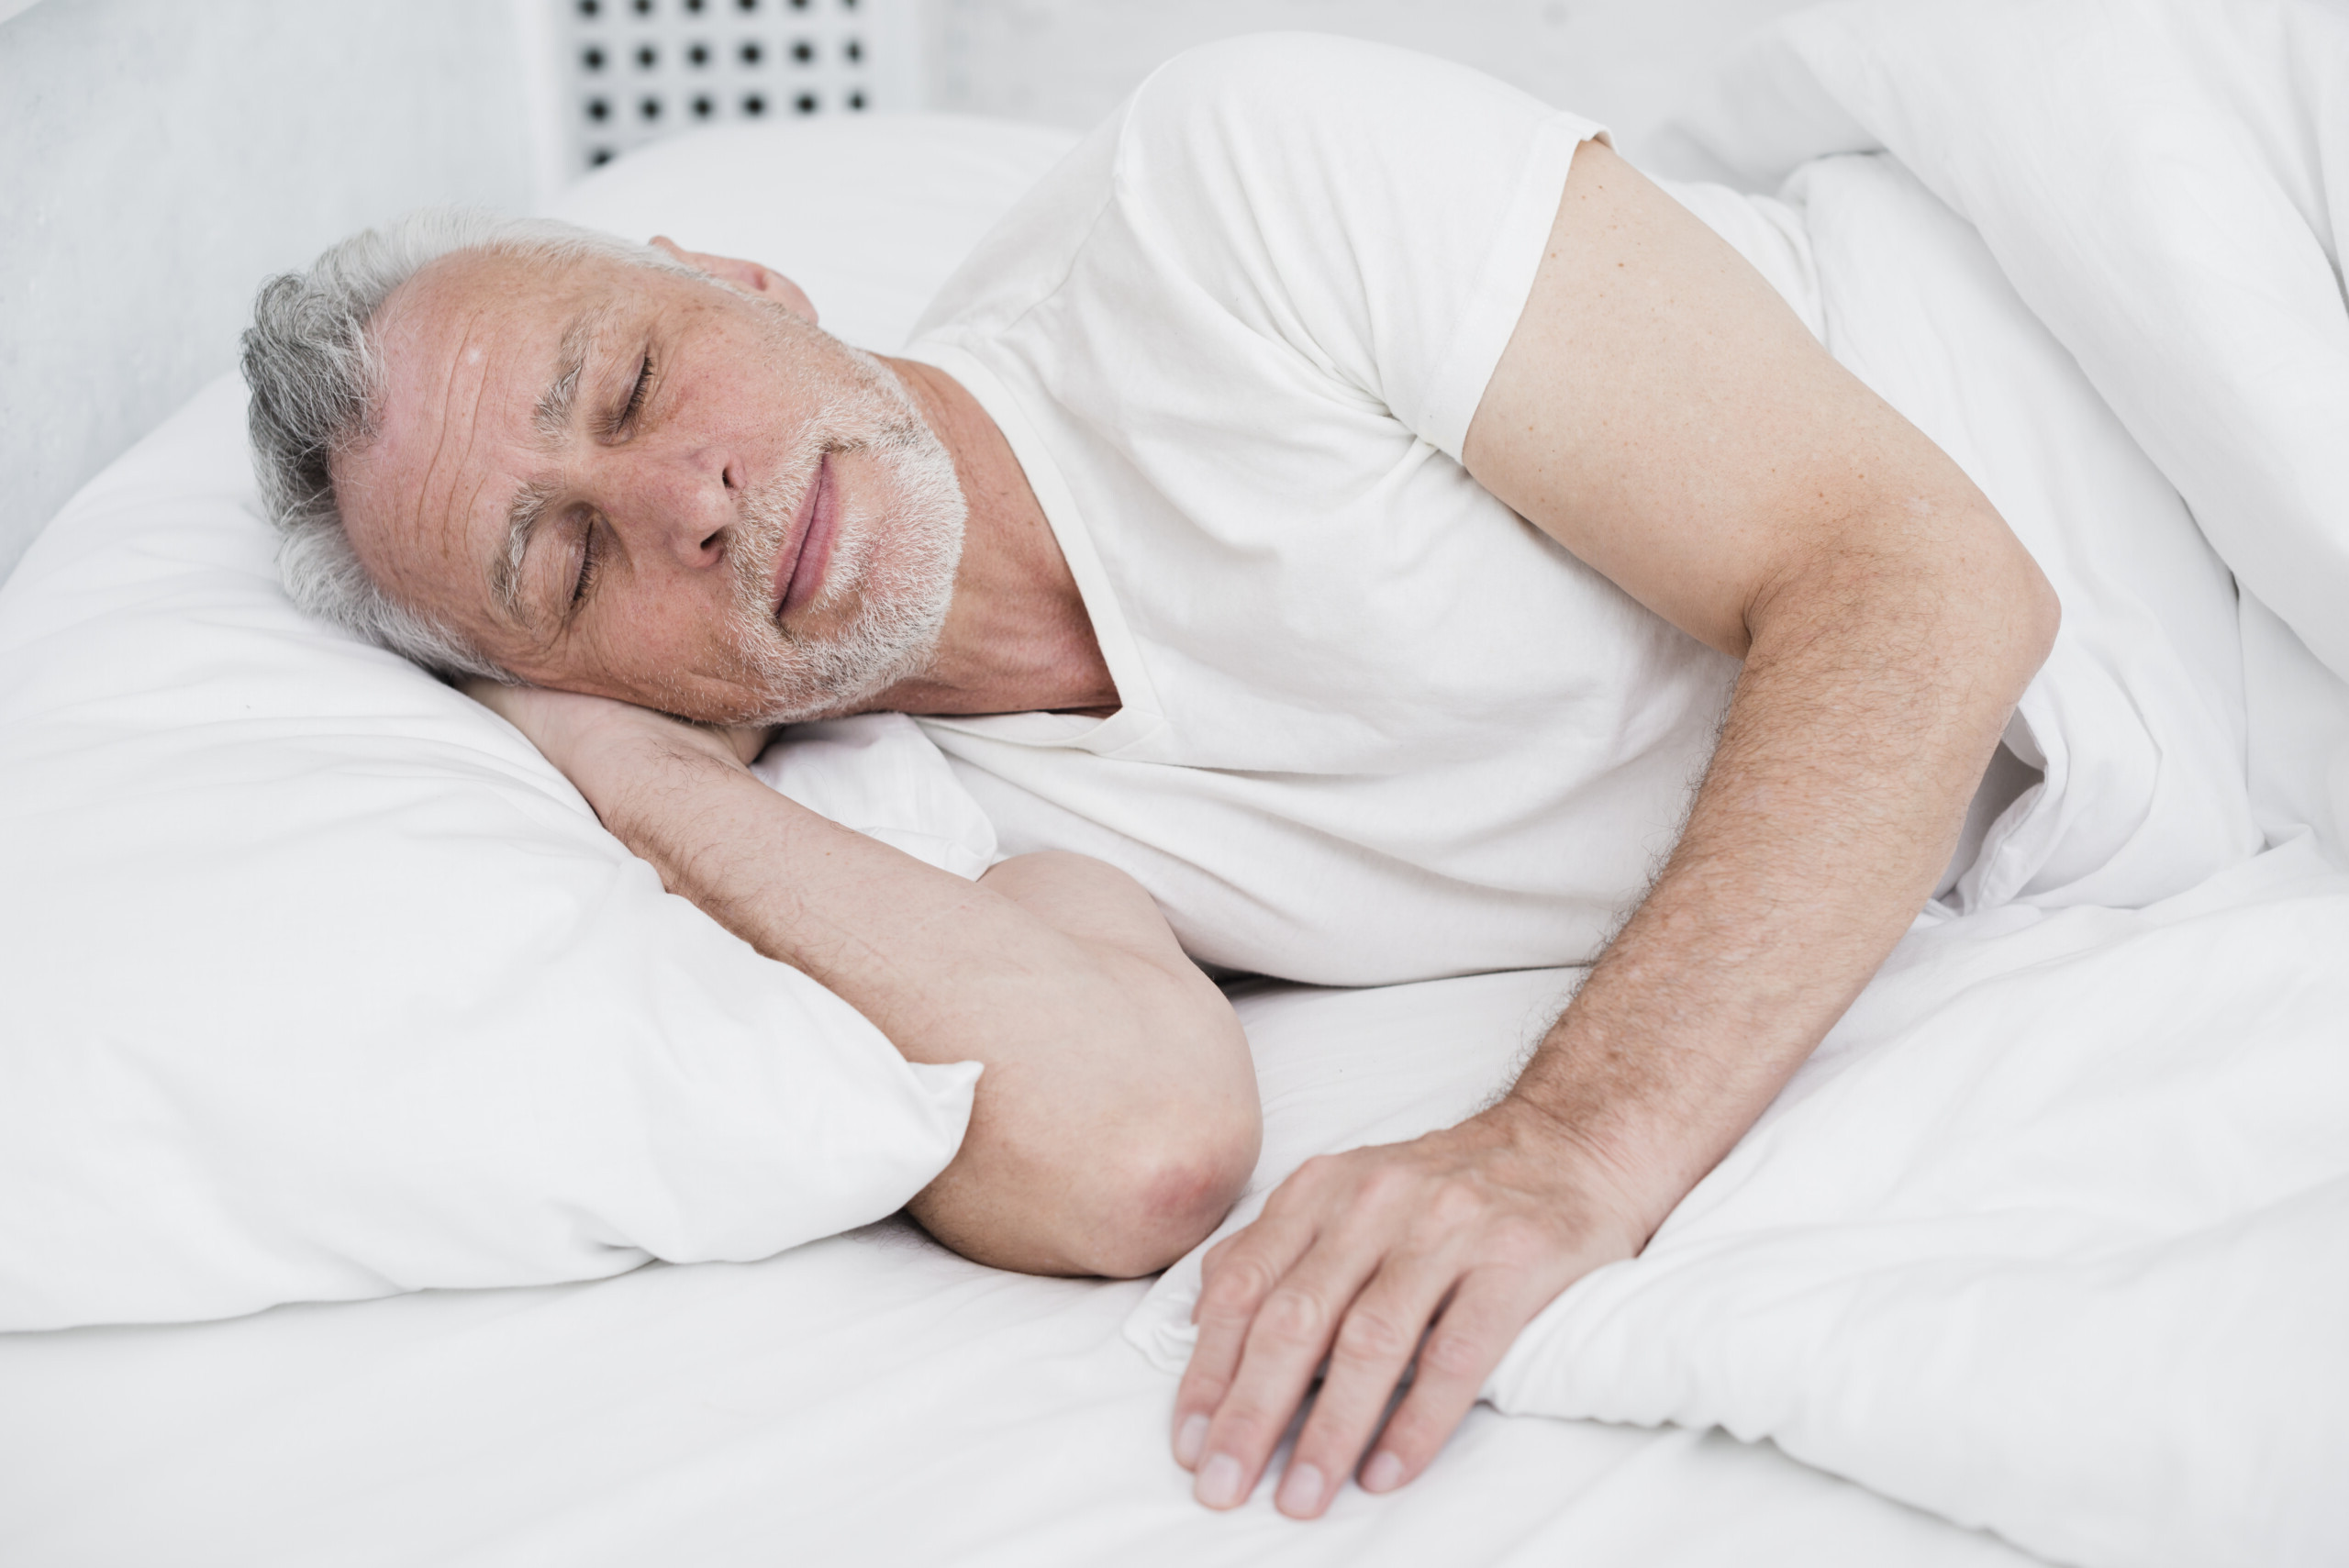 Does GERD Cause Noisy Breathing During Sleep?